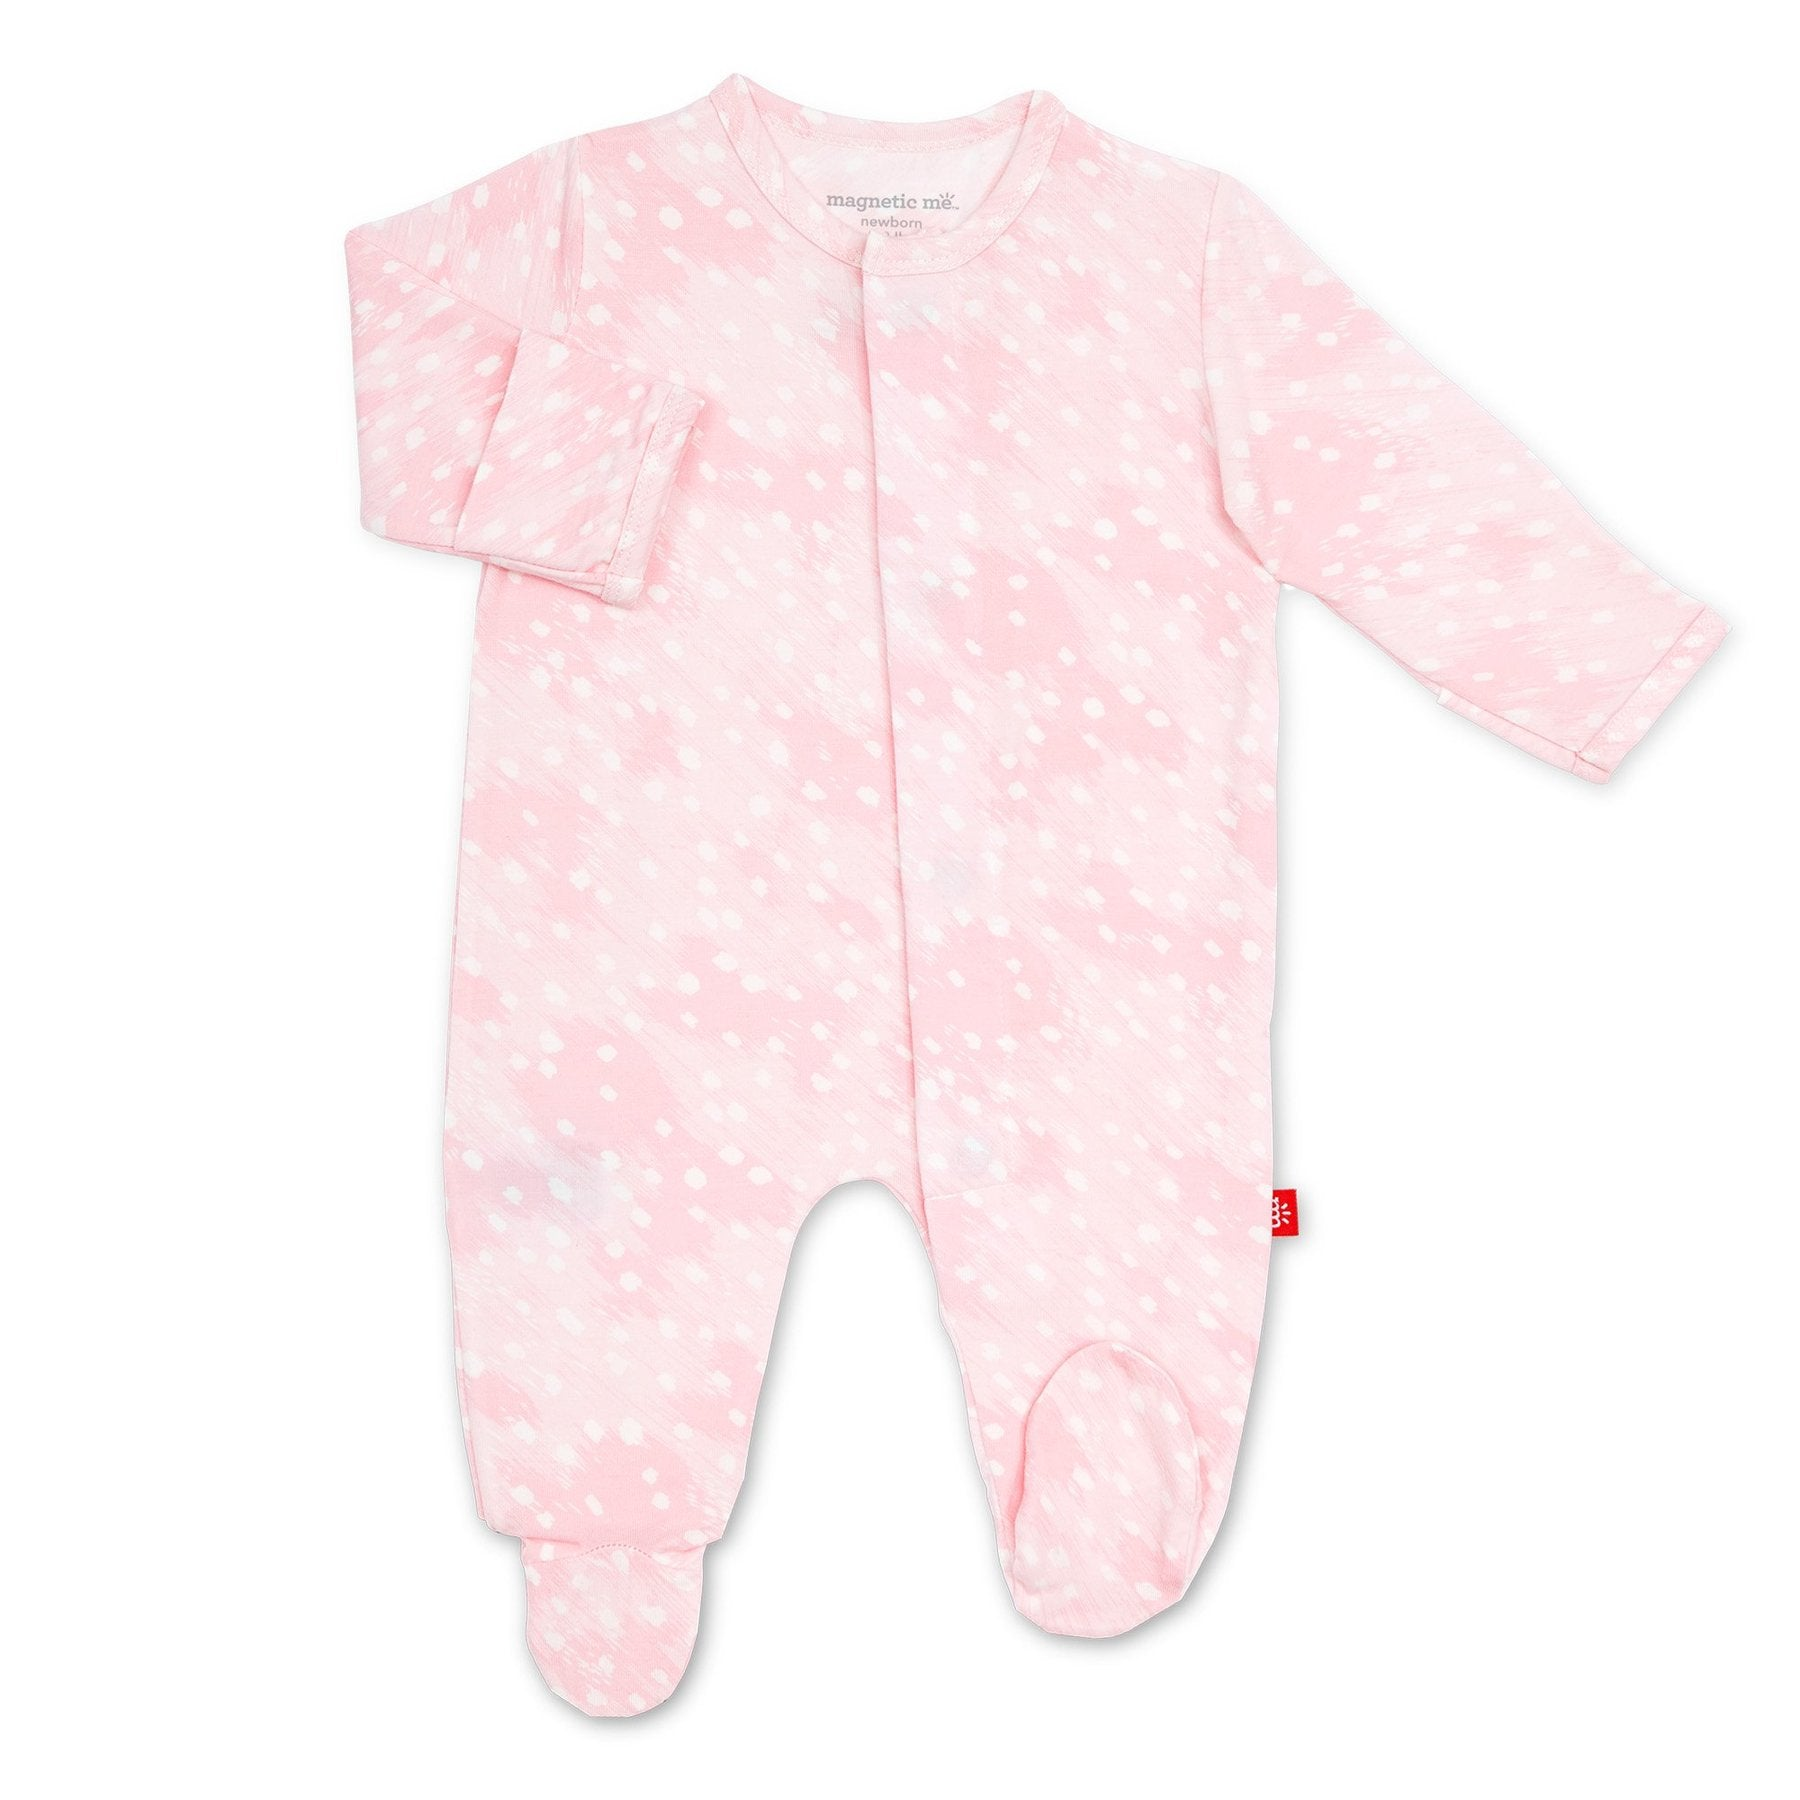 Magnetic Me Pink Doeskin Footie